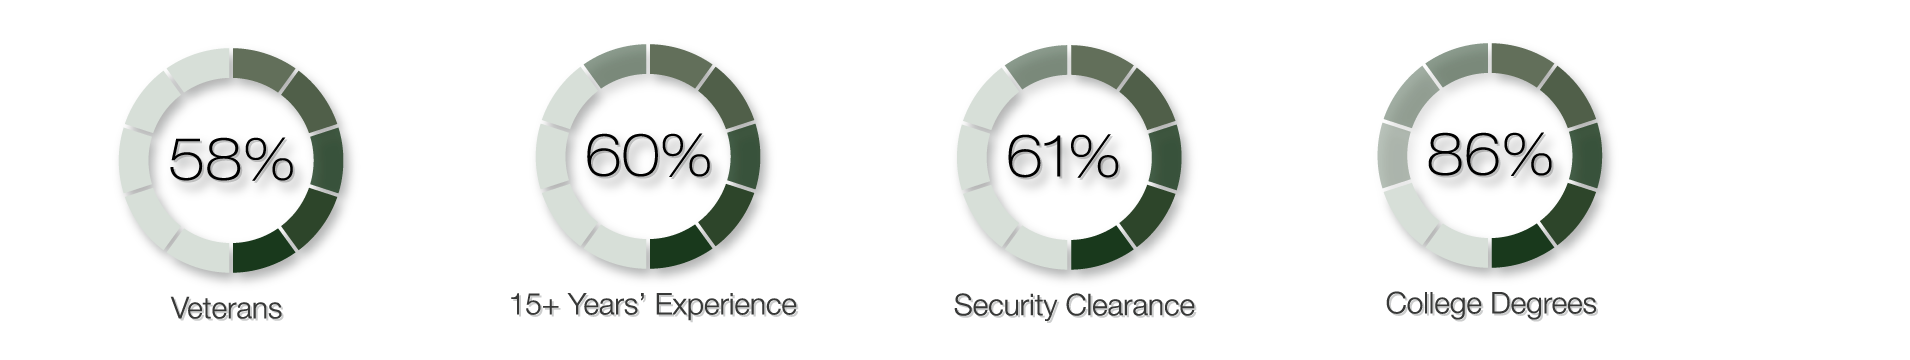 TIME Systems team comprises 58% Veterans, 60% with 15+ Years' Experience, 61% with a security clearance, 86% with college degrees. All of these are represented by green donut charts.